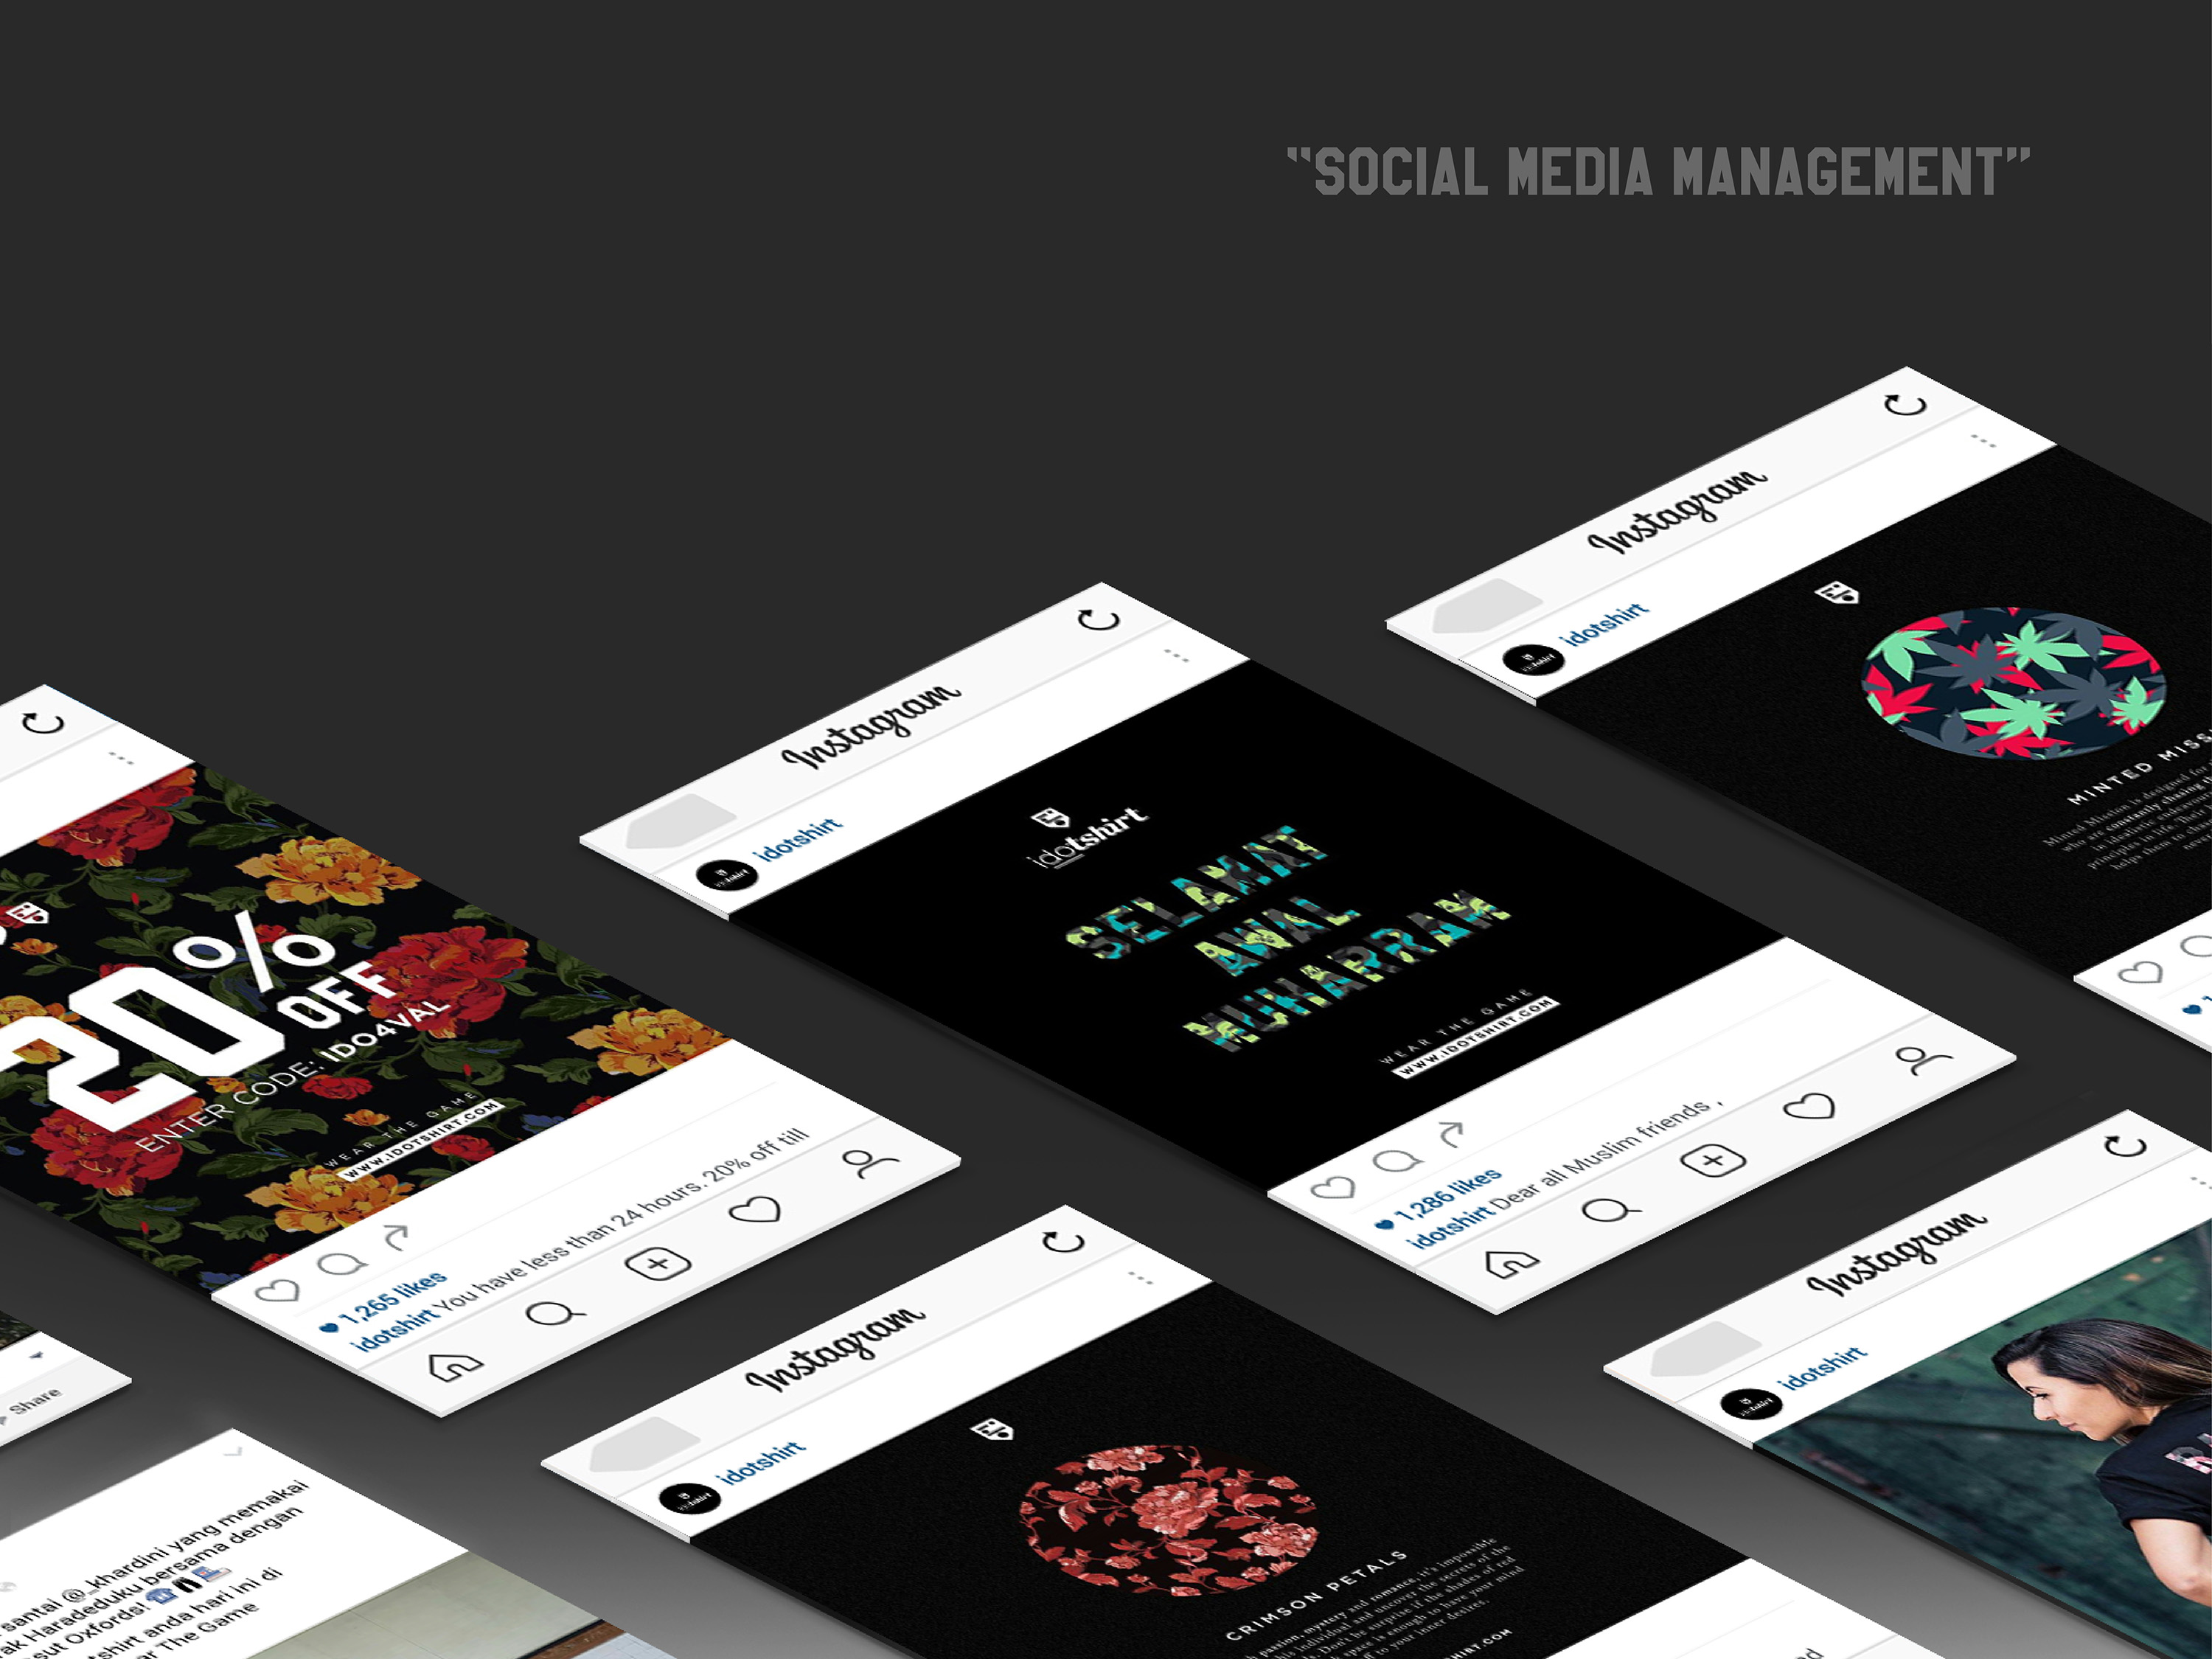 IDOTshirt social media management post design using patterns in product introduction post, greeting post and sharing customer post to create brand relationship